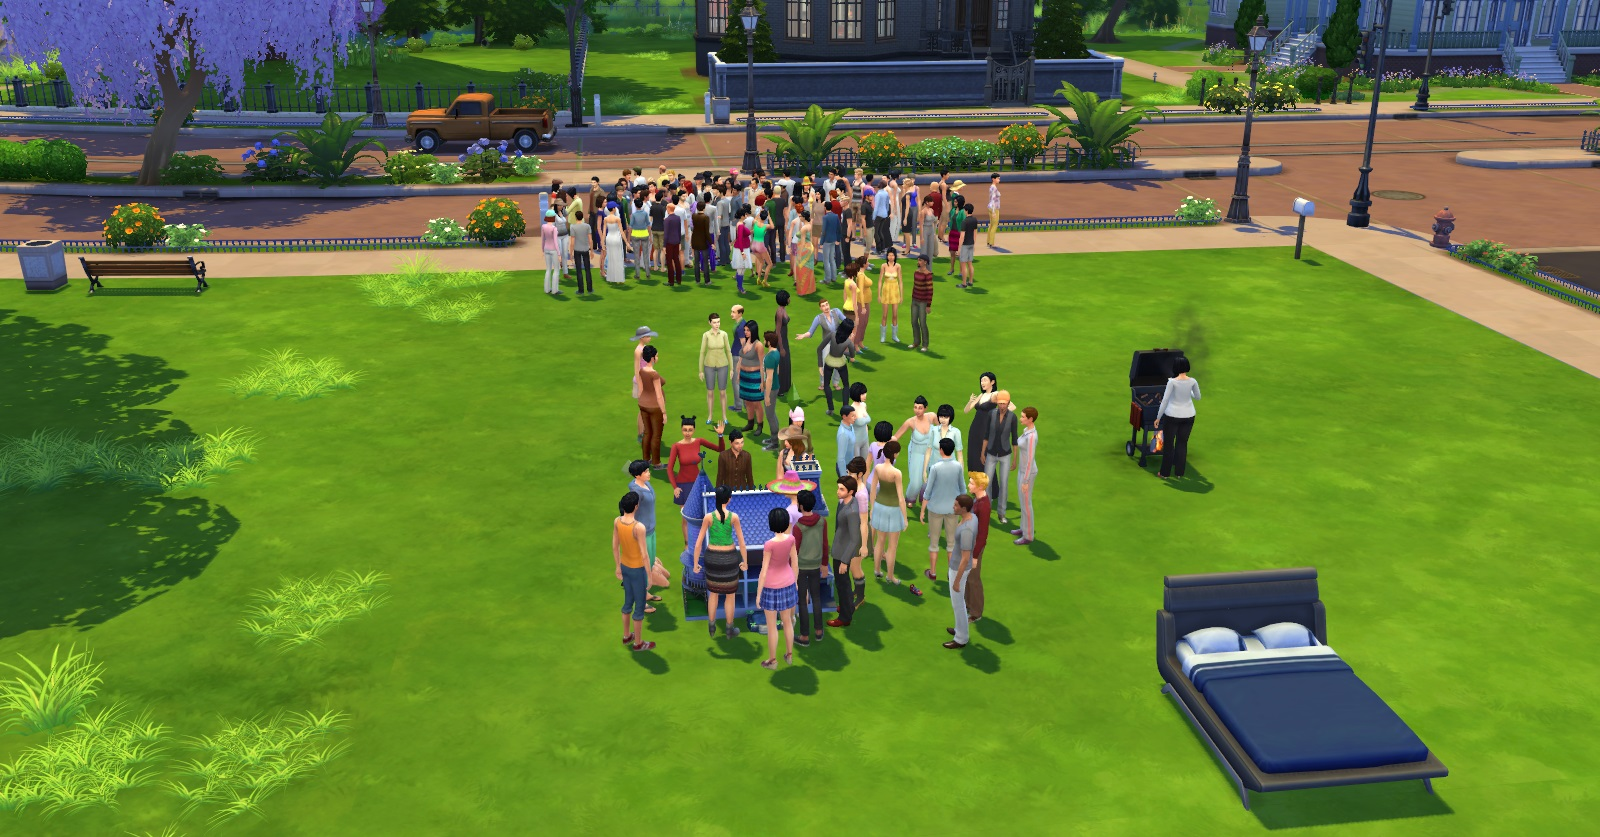 Mod The Sims - Full House Mod - Increase your Household Size